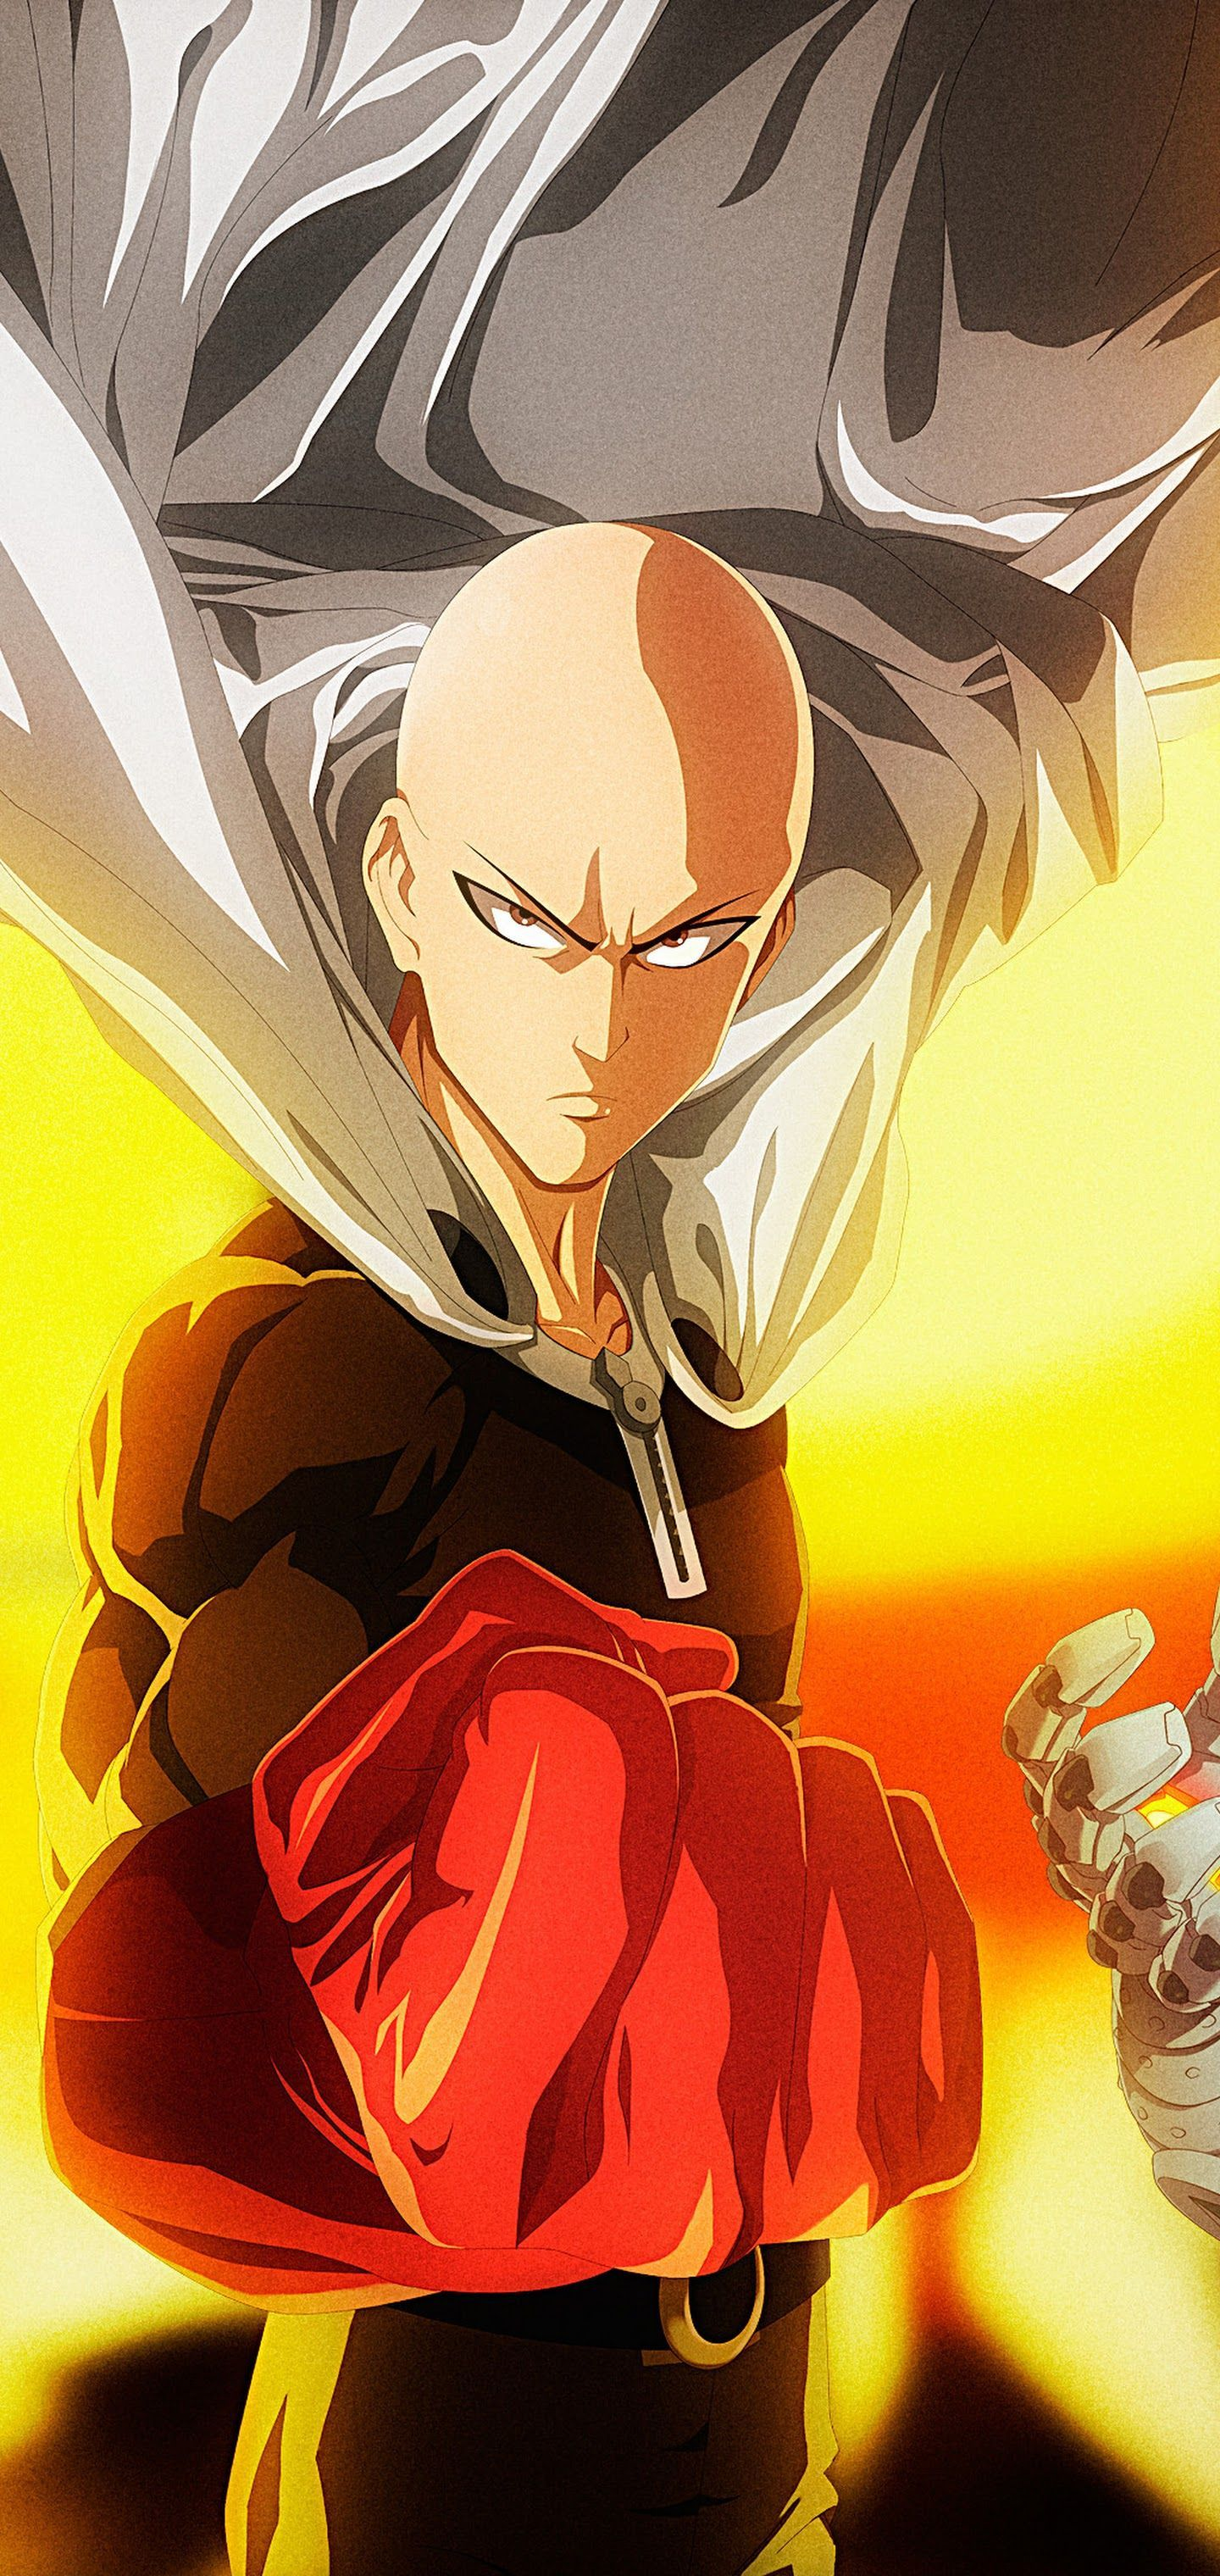 One Punch Man 4k Android Wallpapers - Wallpaper Cave